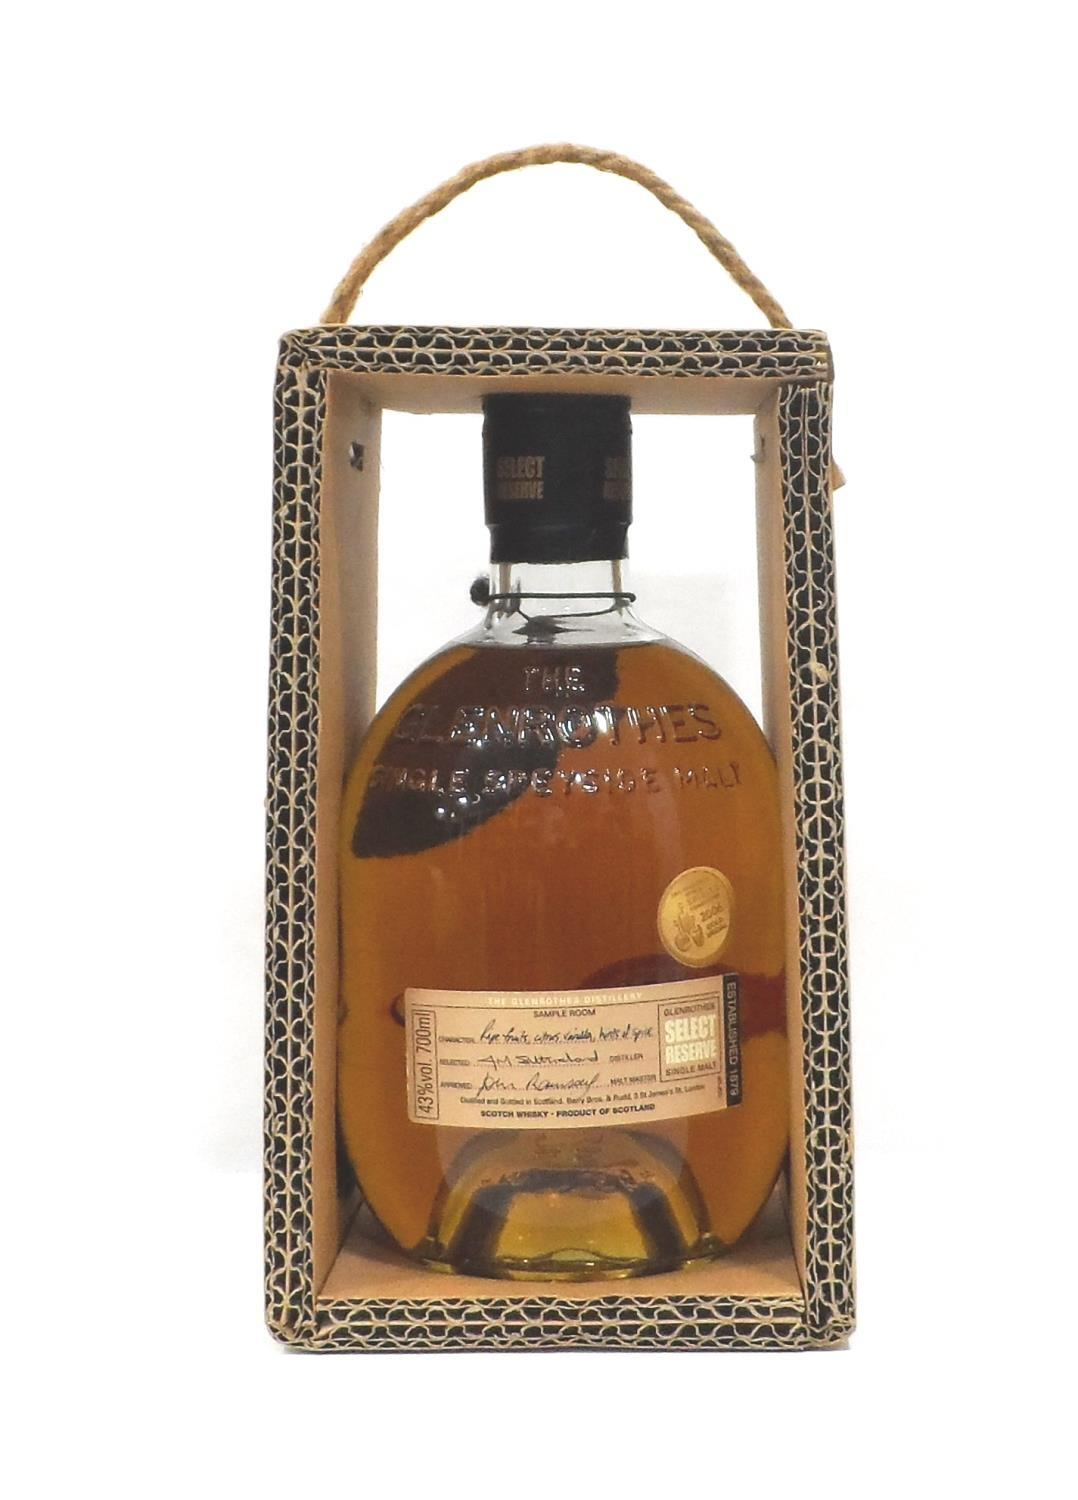 Lot 38 - GLENROTHES SELECT RESERVE A bottle of the Glenrothes Select Reserve Single Malt Scotch Whisky. 70cl.